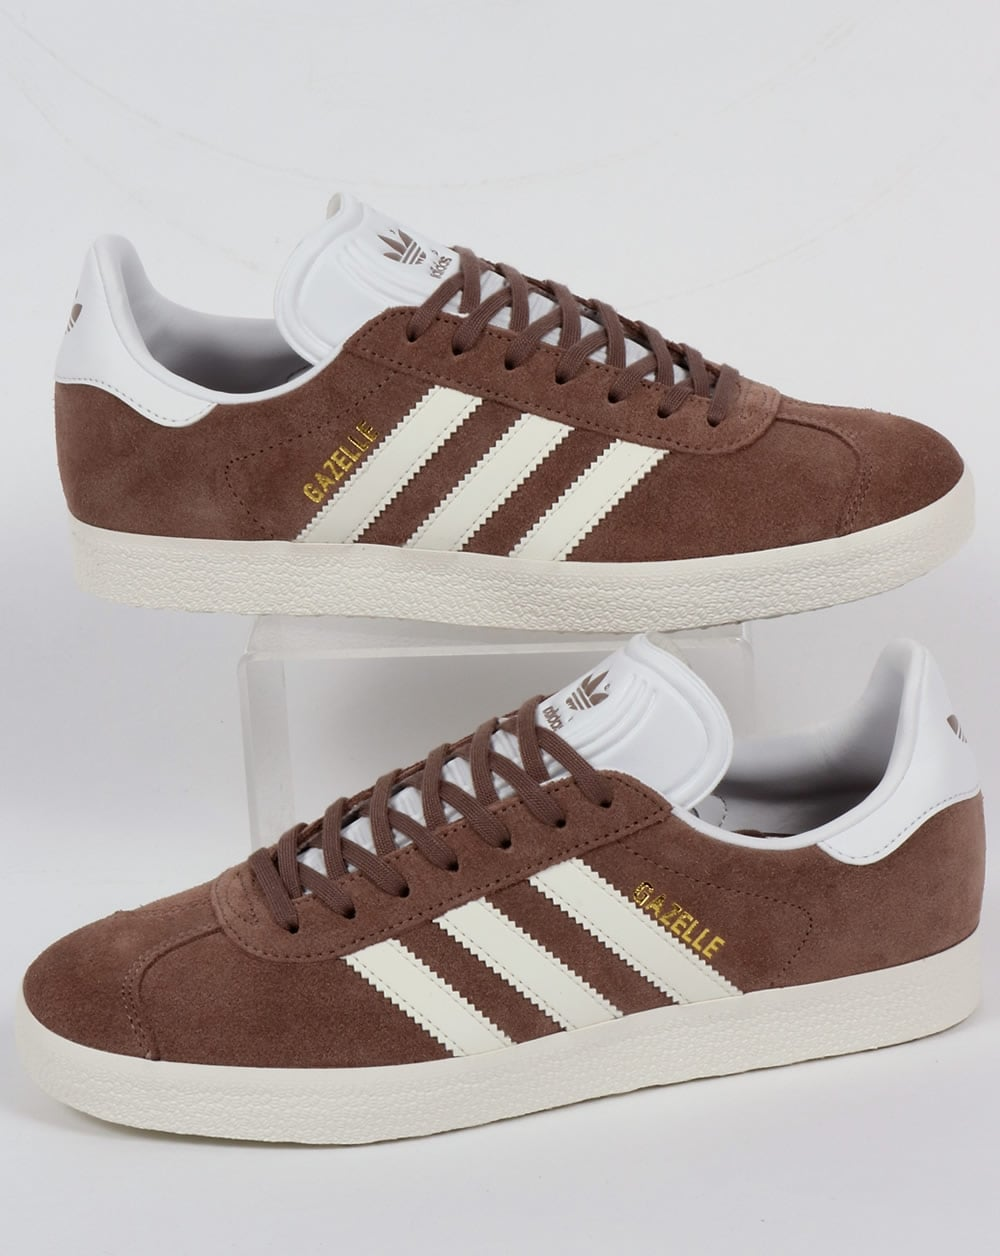 100% authentic 27aae 8f9b1 adidas Trainers Adidas Gazelle Trainers Soft BrownOff White